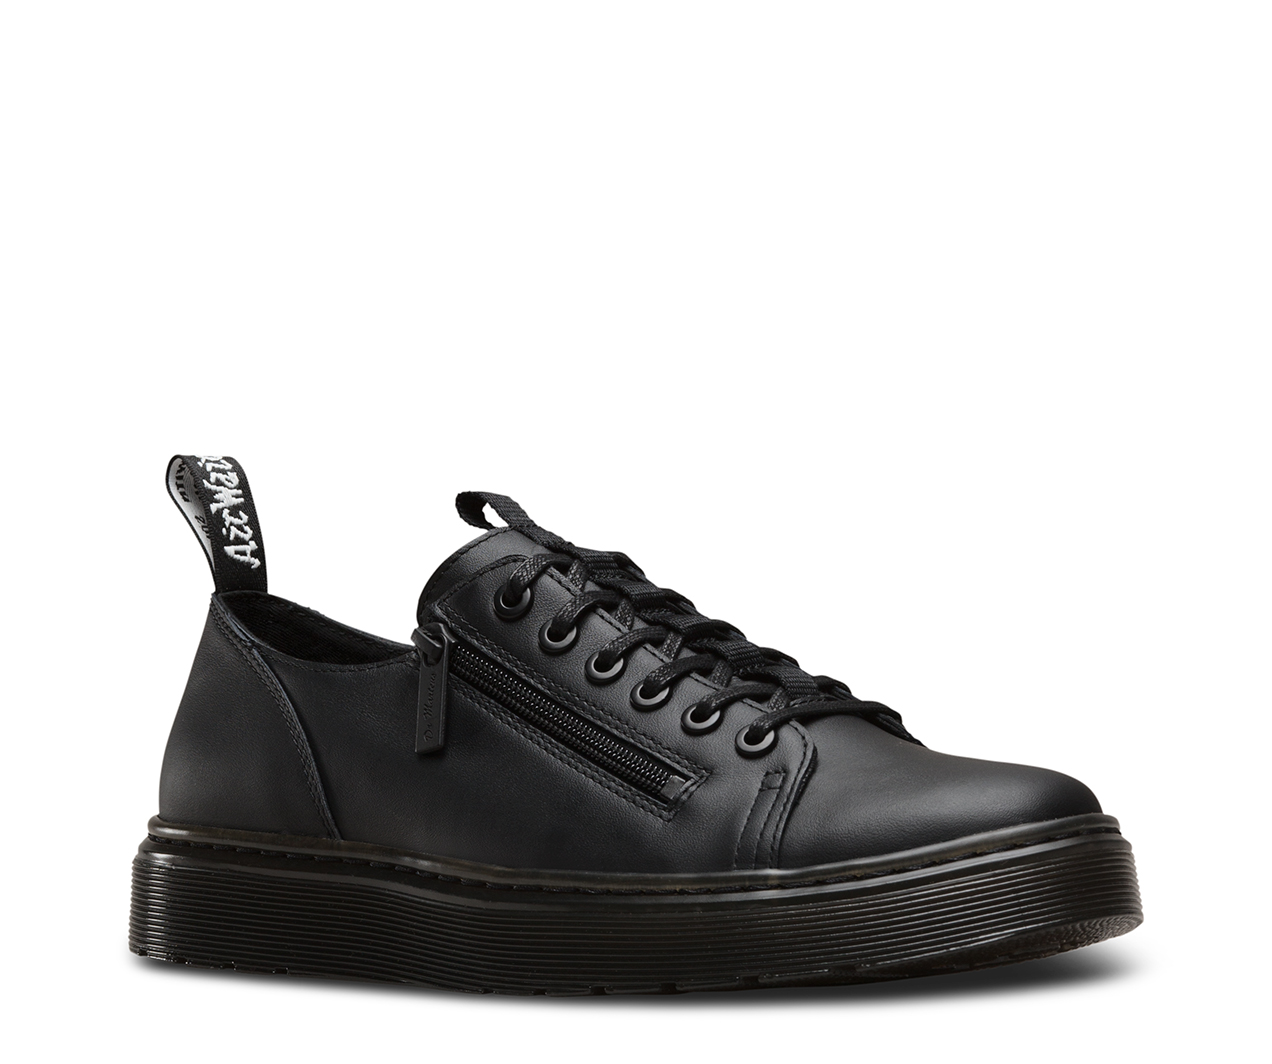 Footaction Sale Online Outlet Low Shipping Dr. Martens Dante Sneakers Discount From China 4p6jhA2EhU